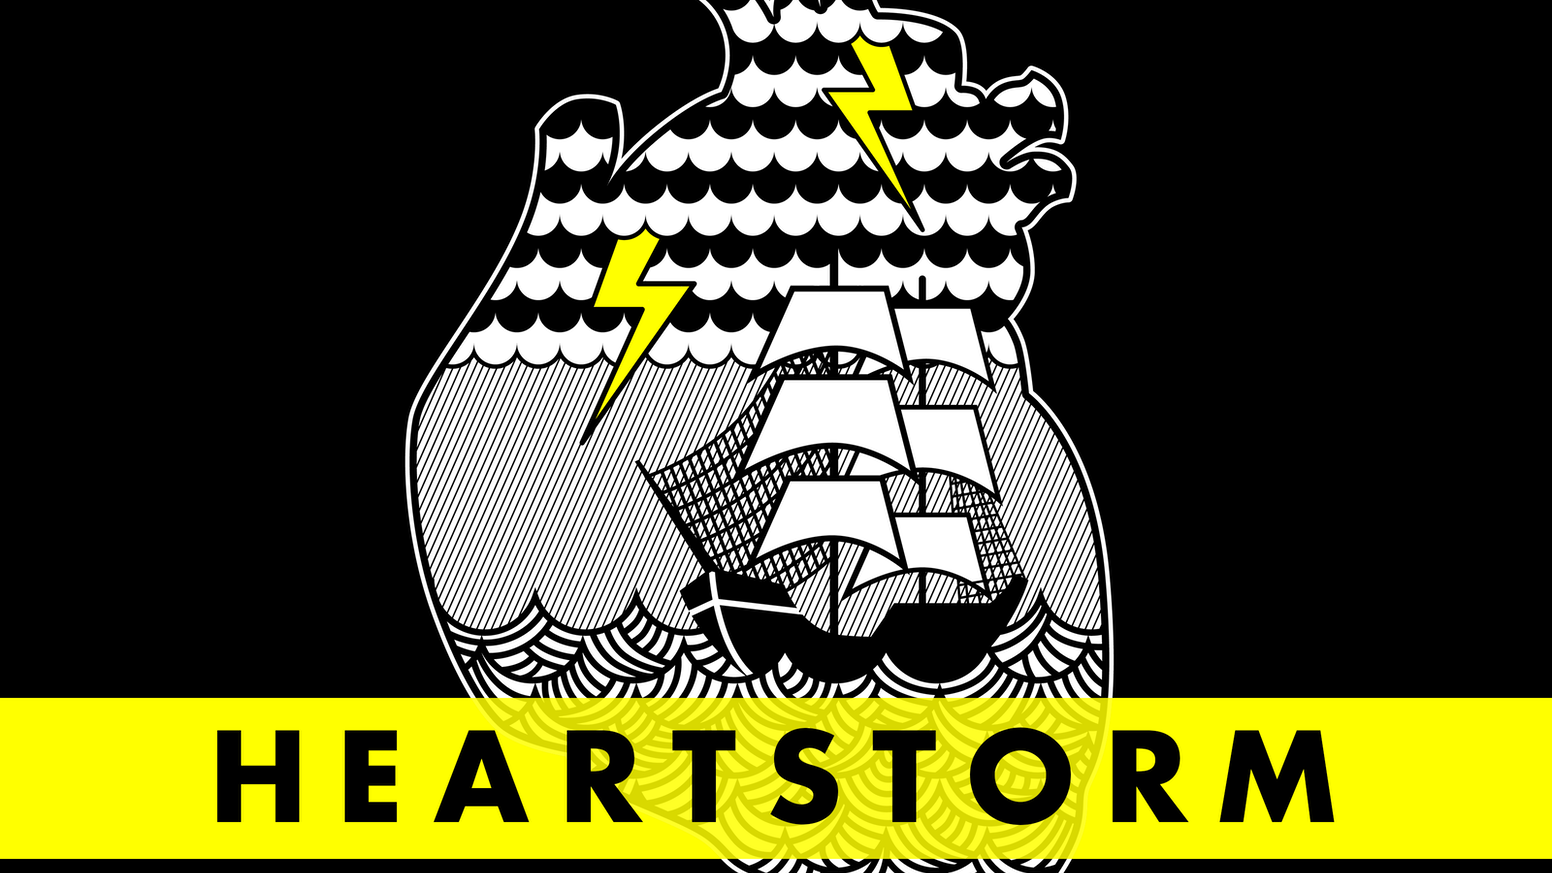 Heartstorm is a hand-made, linocut print by Michael Buchino. (And Aaron Draplin digs it.)